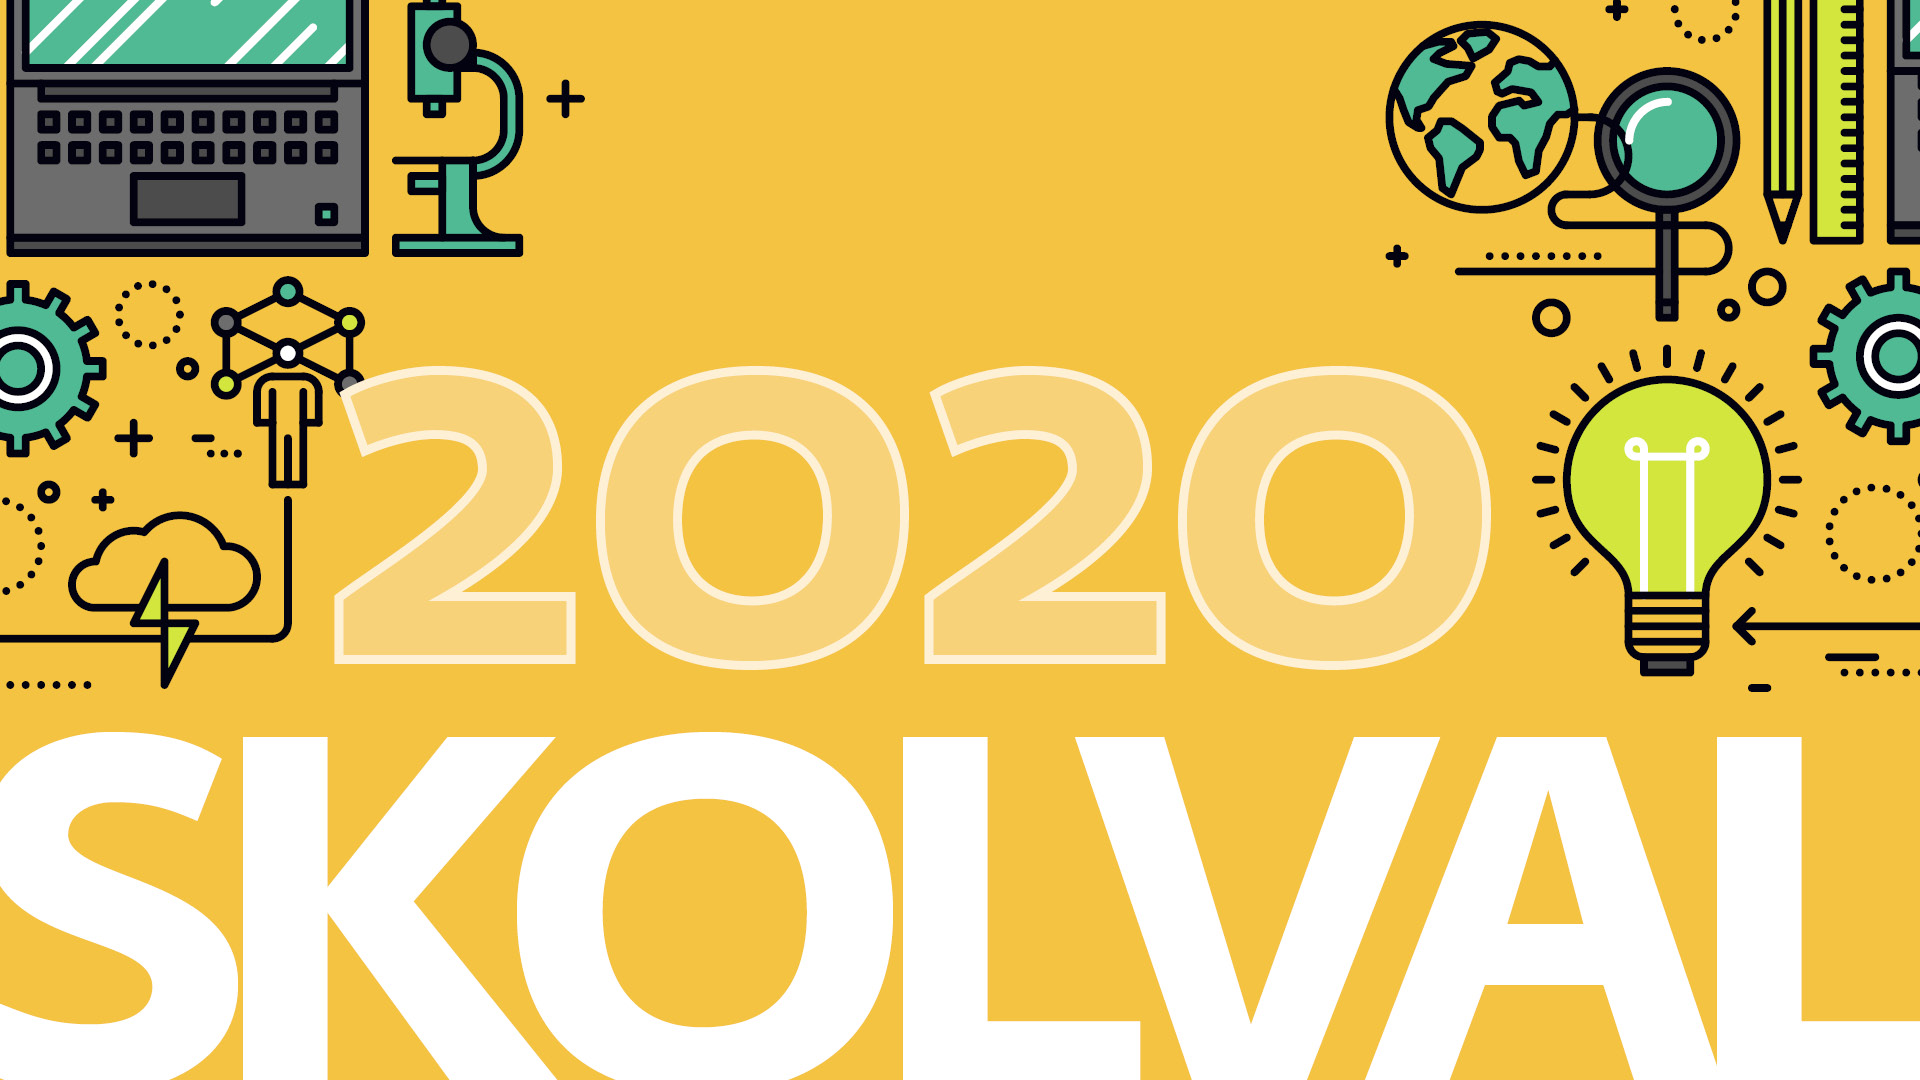 Illustration över skolvalet 2020